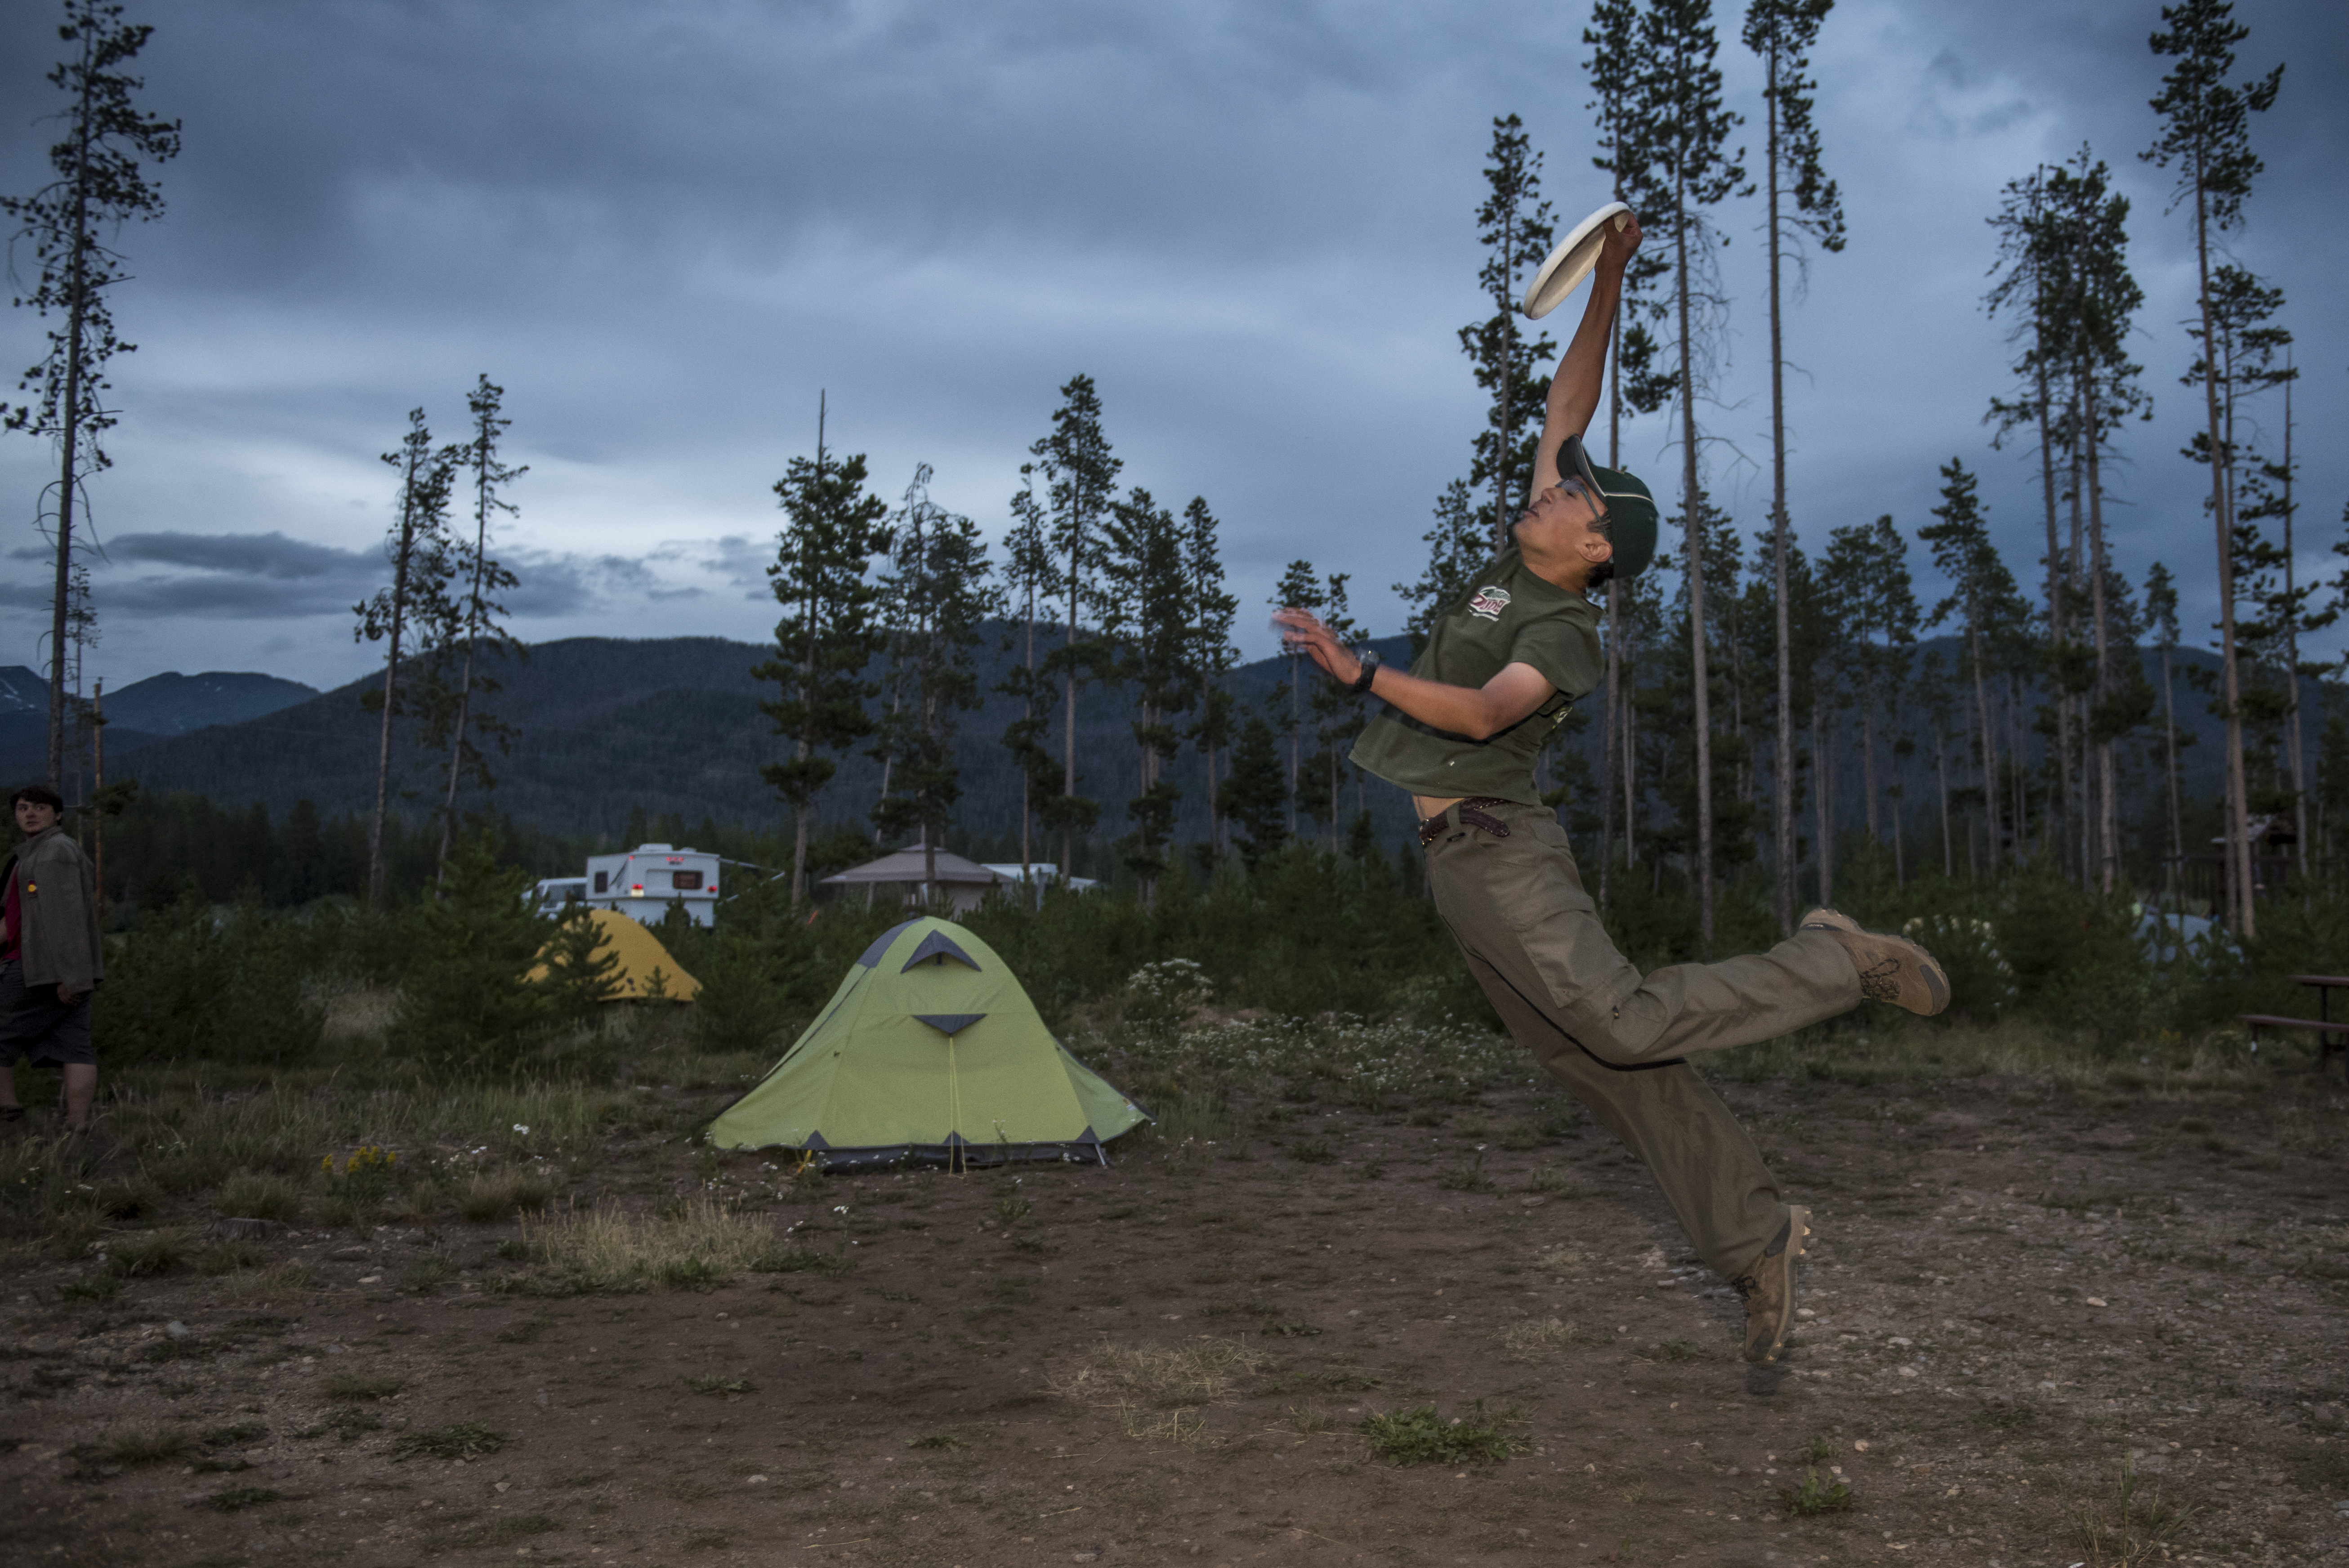 Scouts from PA eat  and do evening activities at a campground on the the edge of Rocky Mountain National Park,  Colorado.